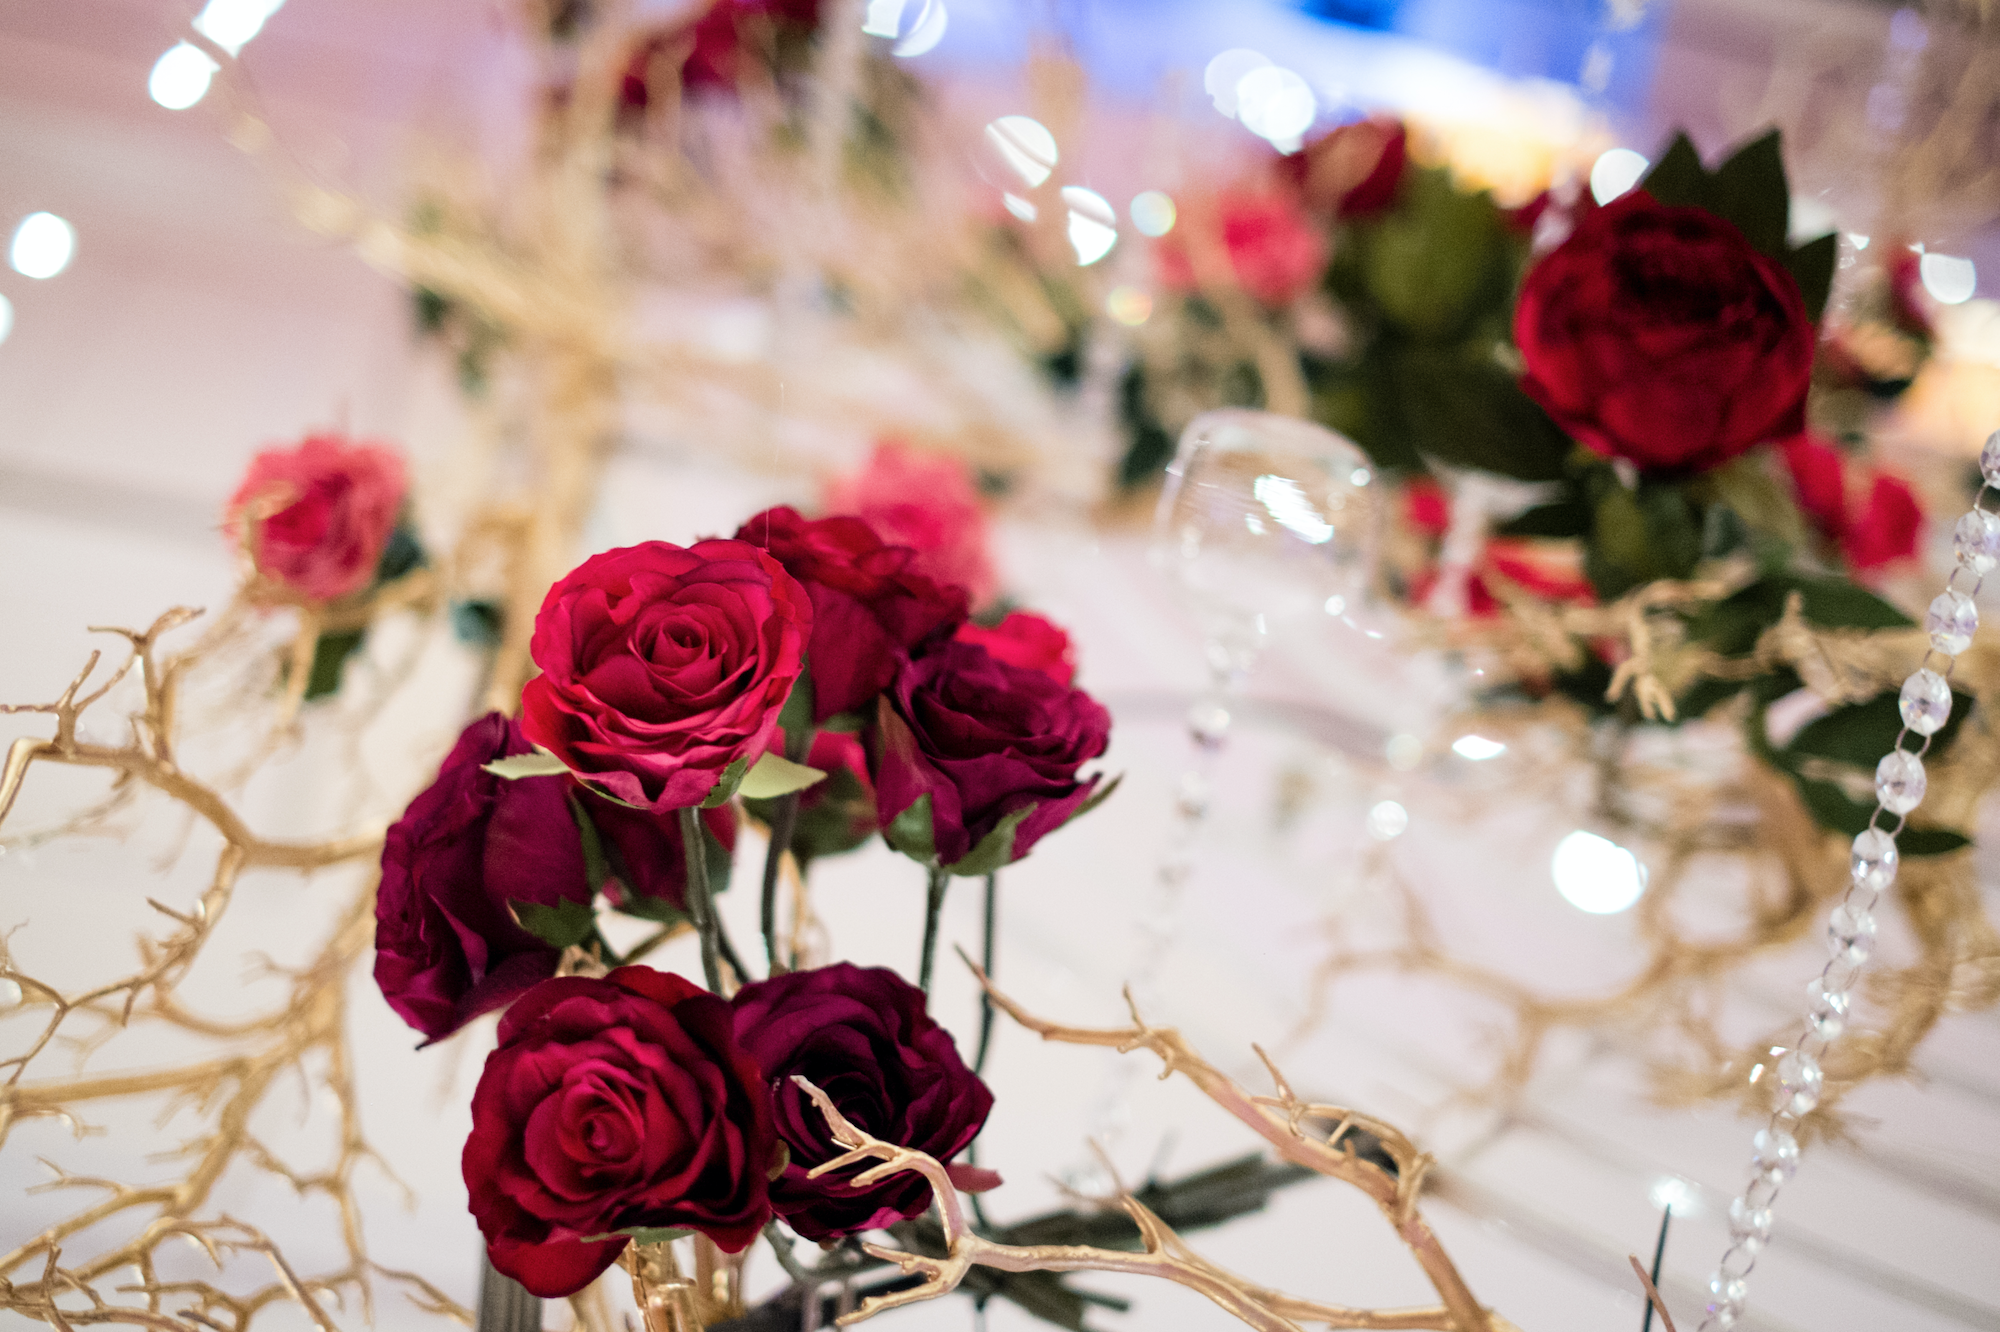 Engaged And Planning That Dream Fairytale Indian Wedding? A Huge Part Of  The Fun In Getting Married Is The Planning Process, Searching For That  Perfect ...